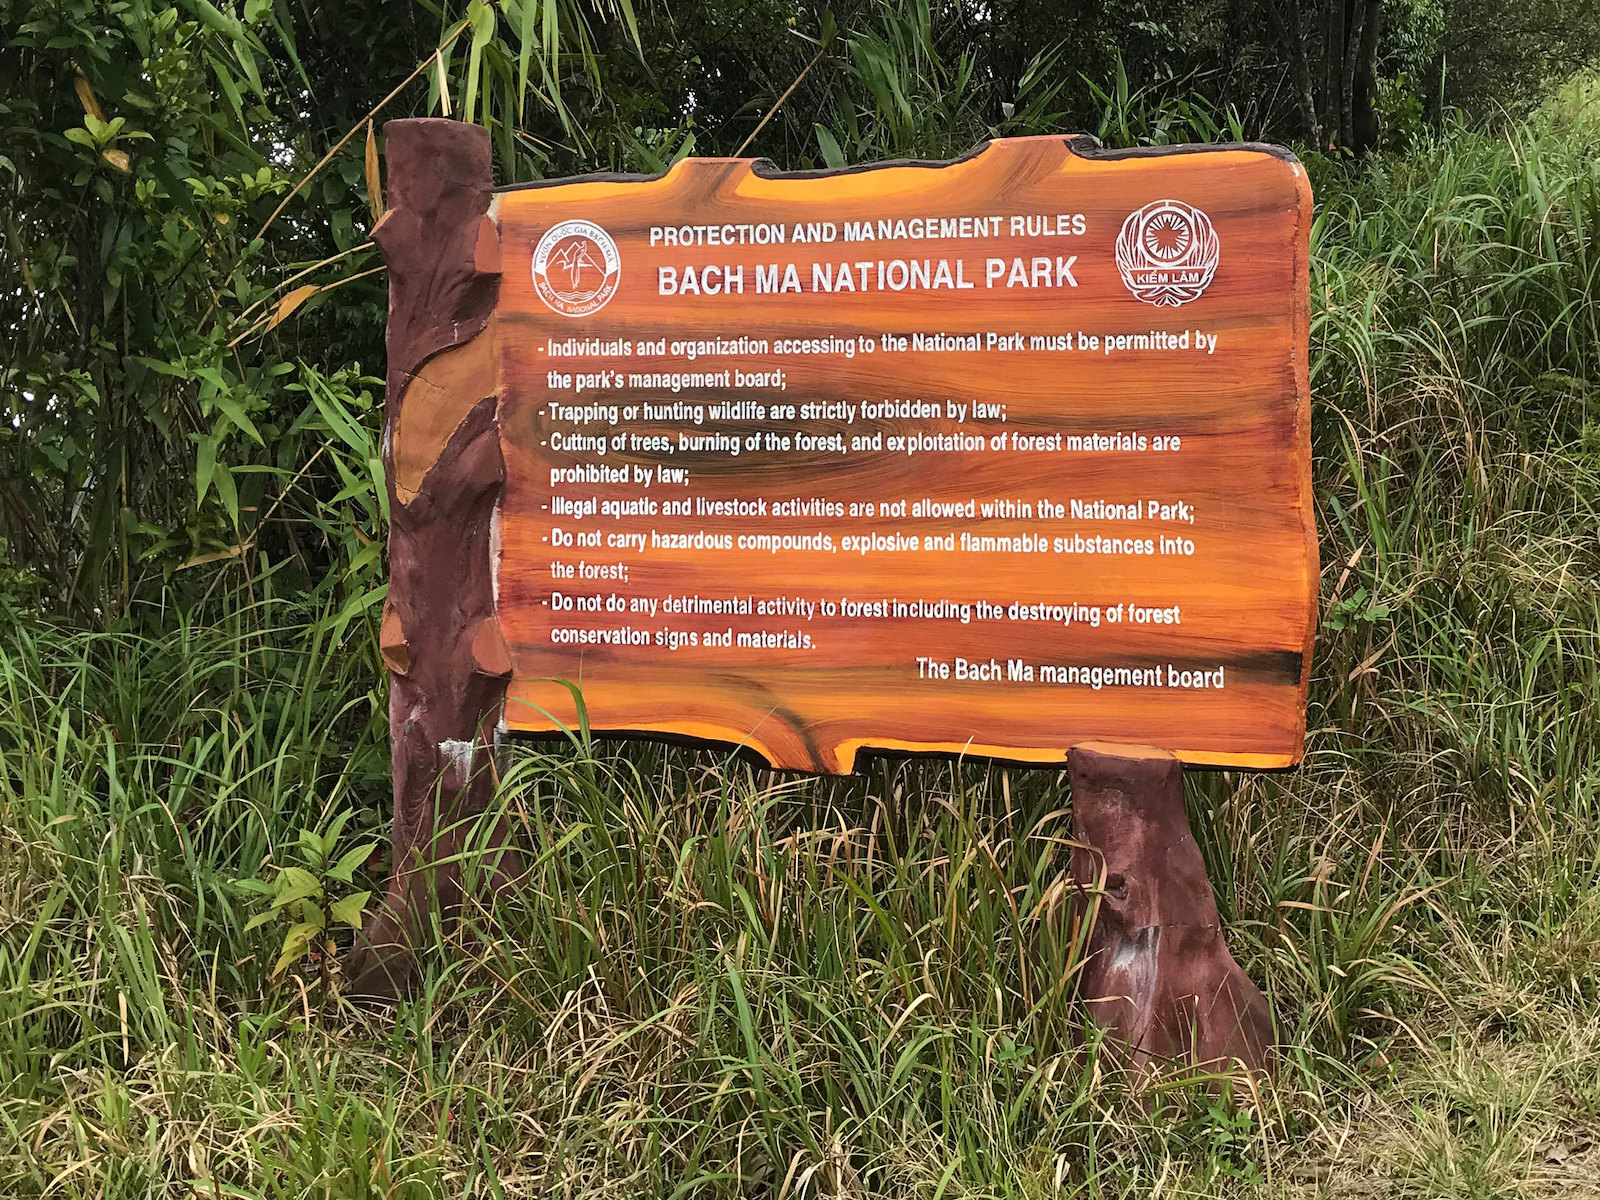 Image of a sign for the Bach Ma National Park in Hue, Vietnam